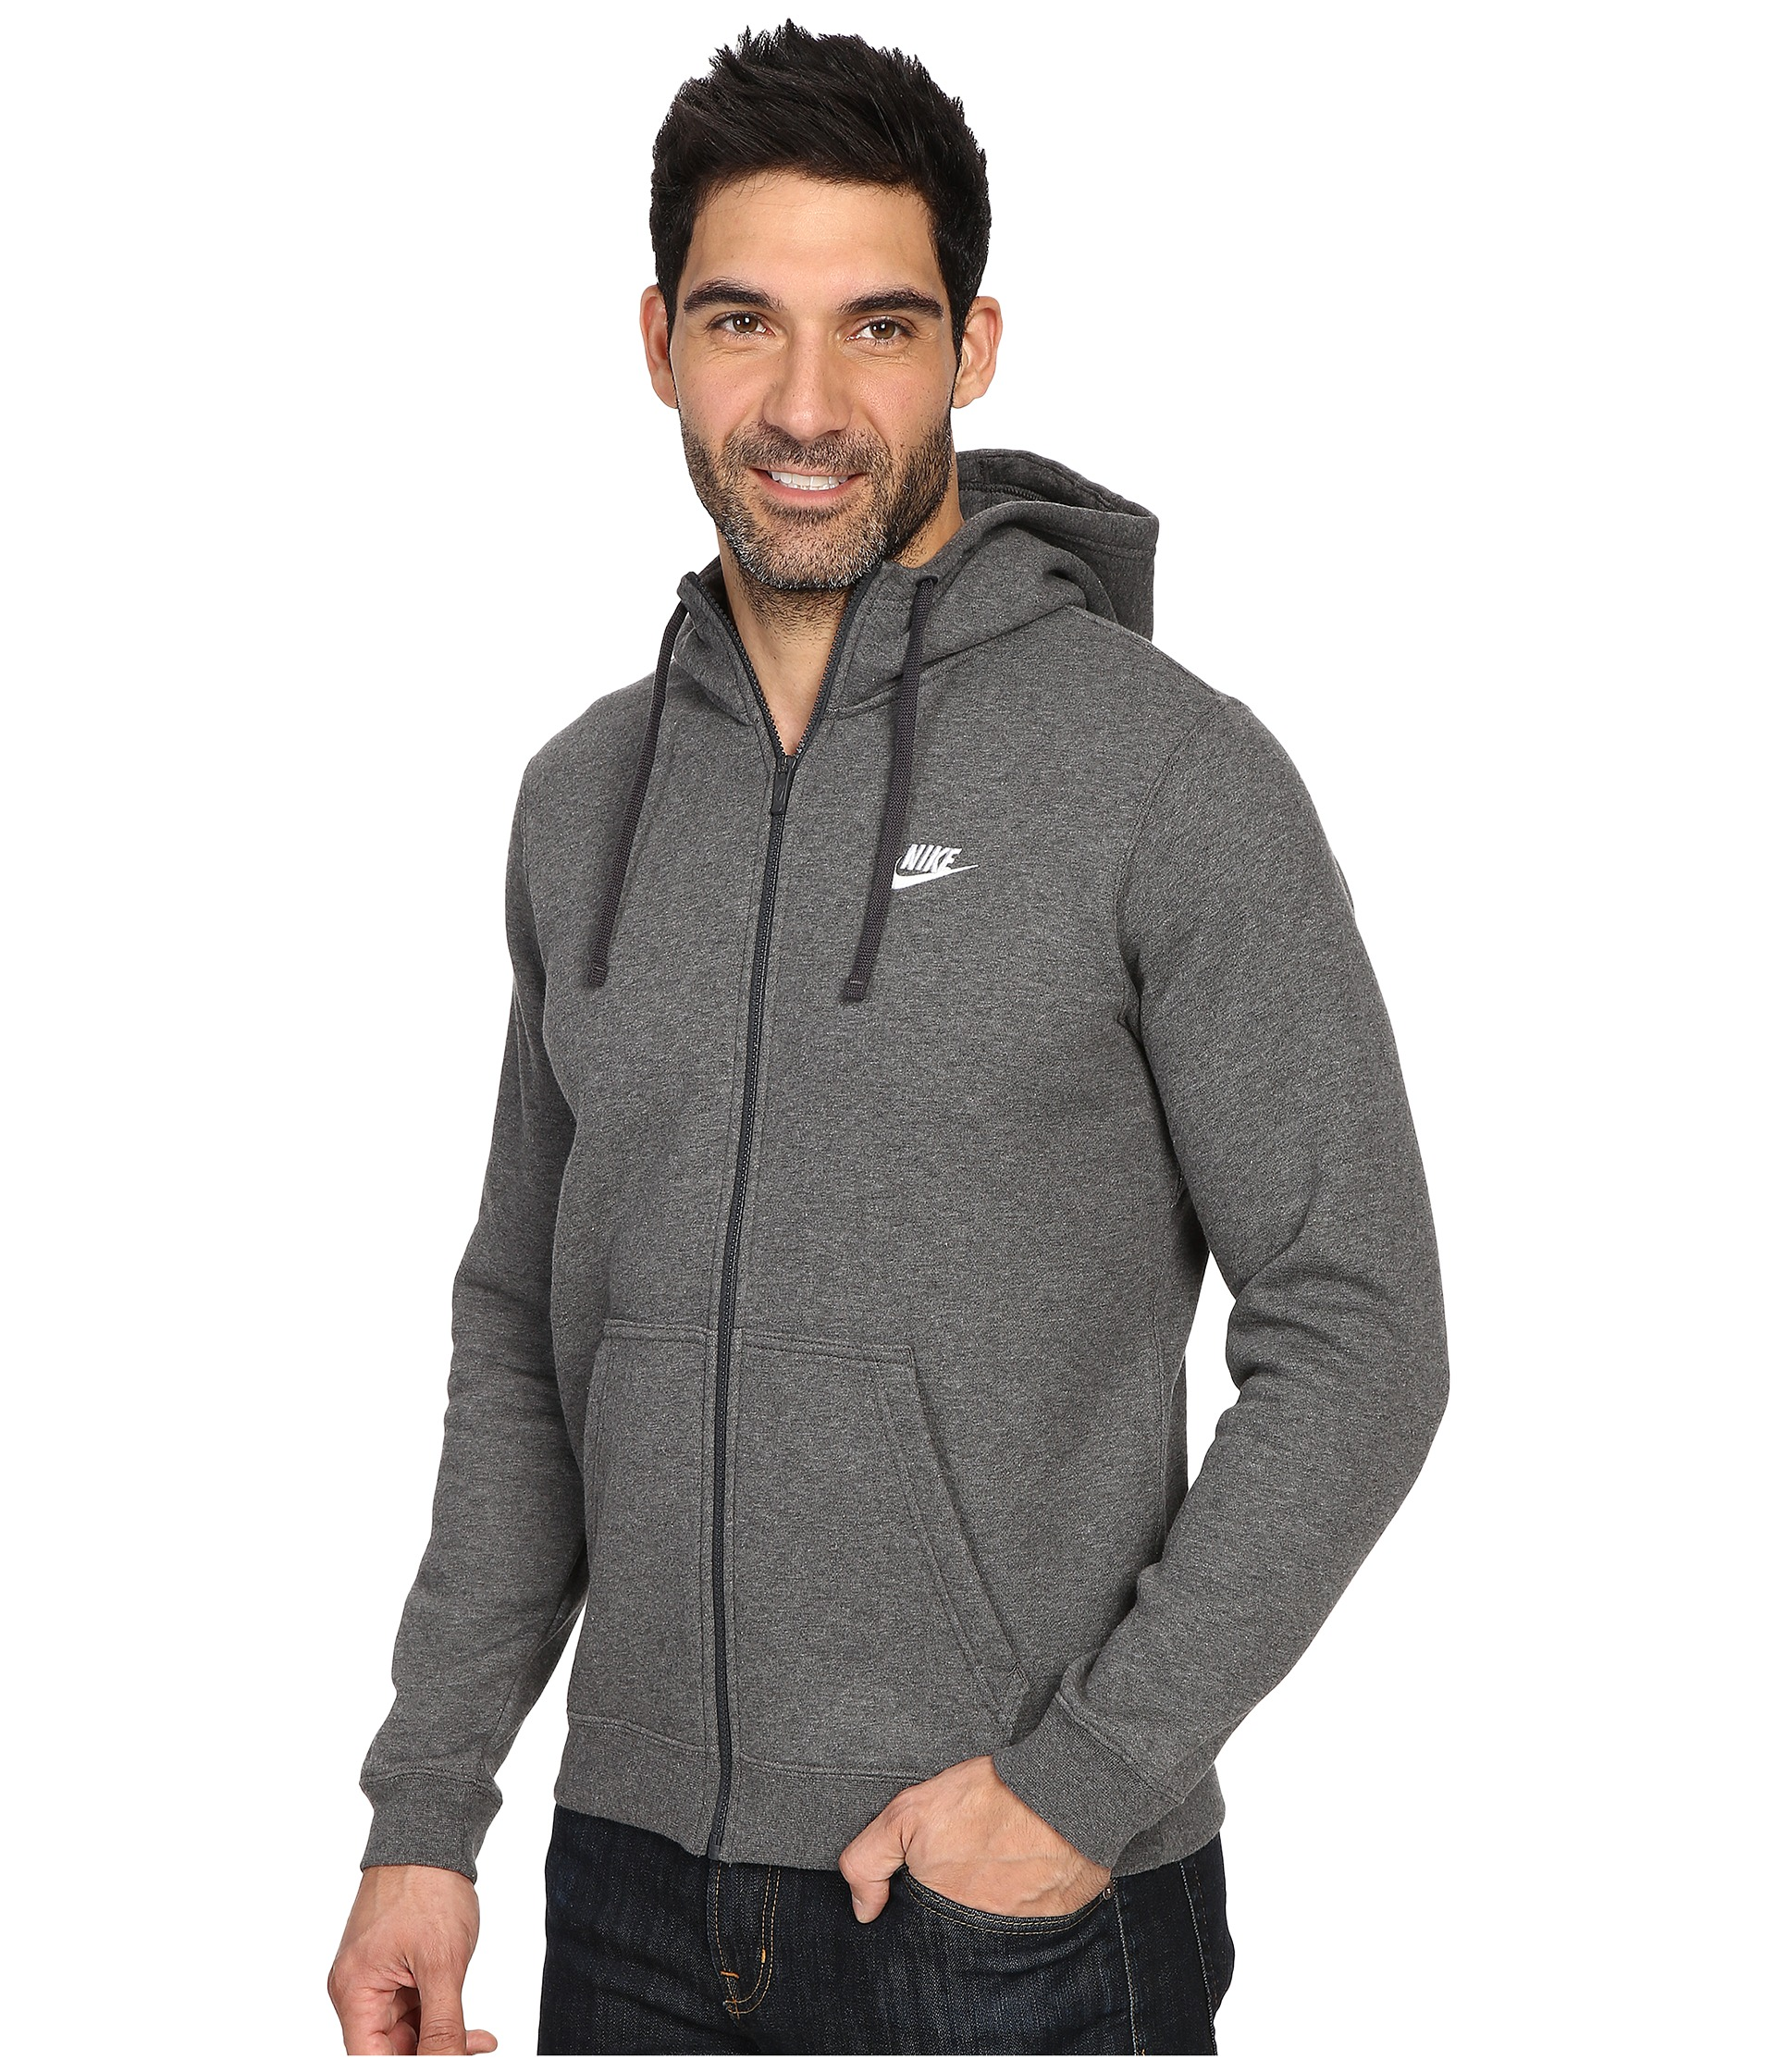 Nike Club Fleece Full-Zip Hoodie - Zappos.com Free Shipping BOTH Ways